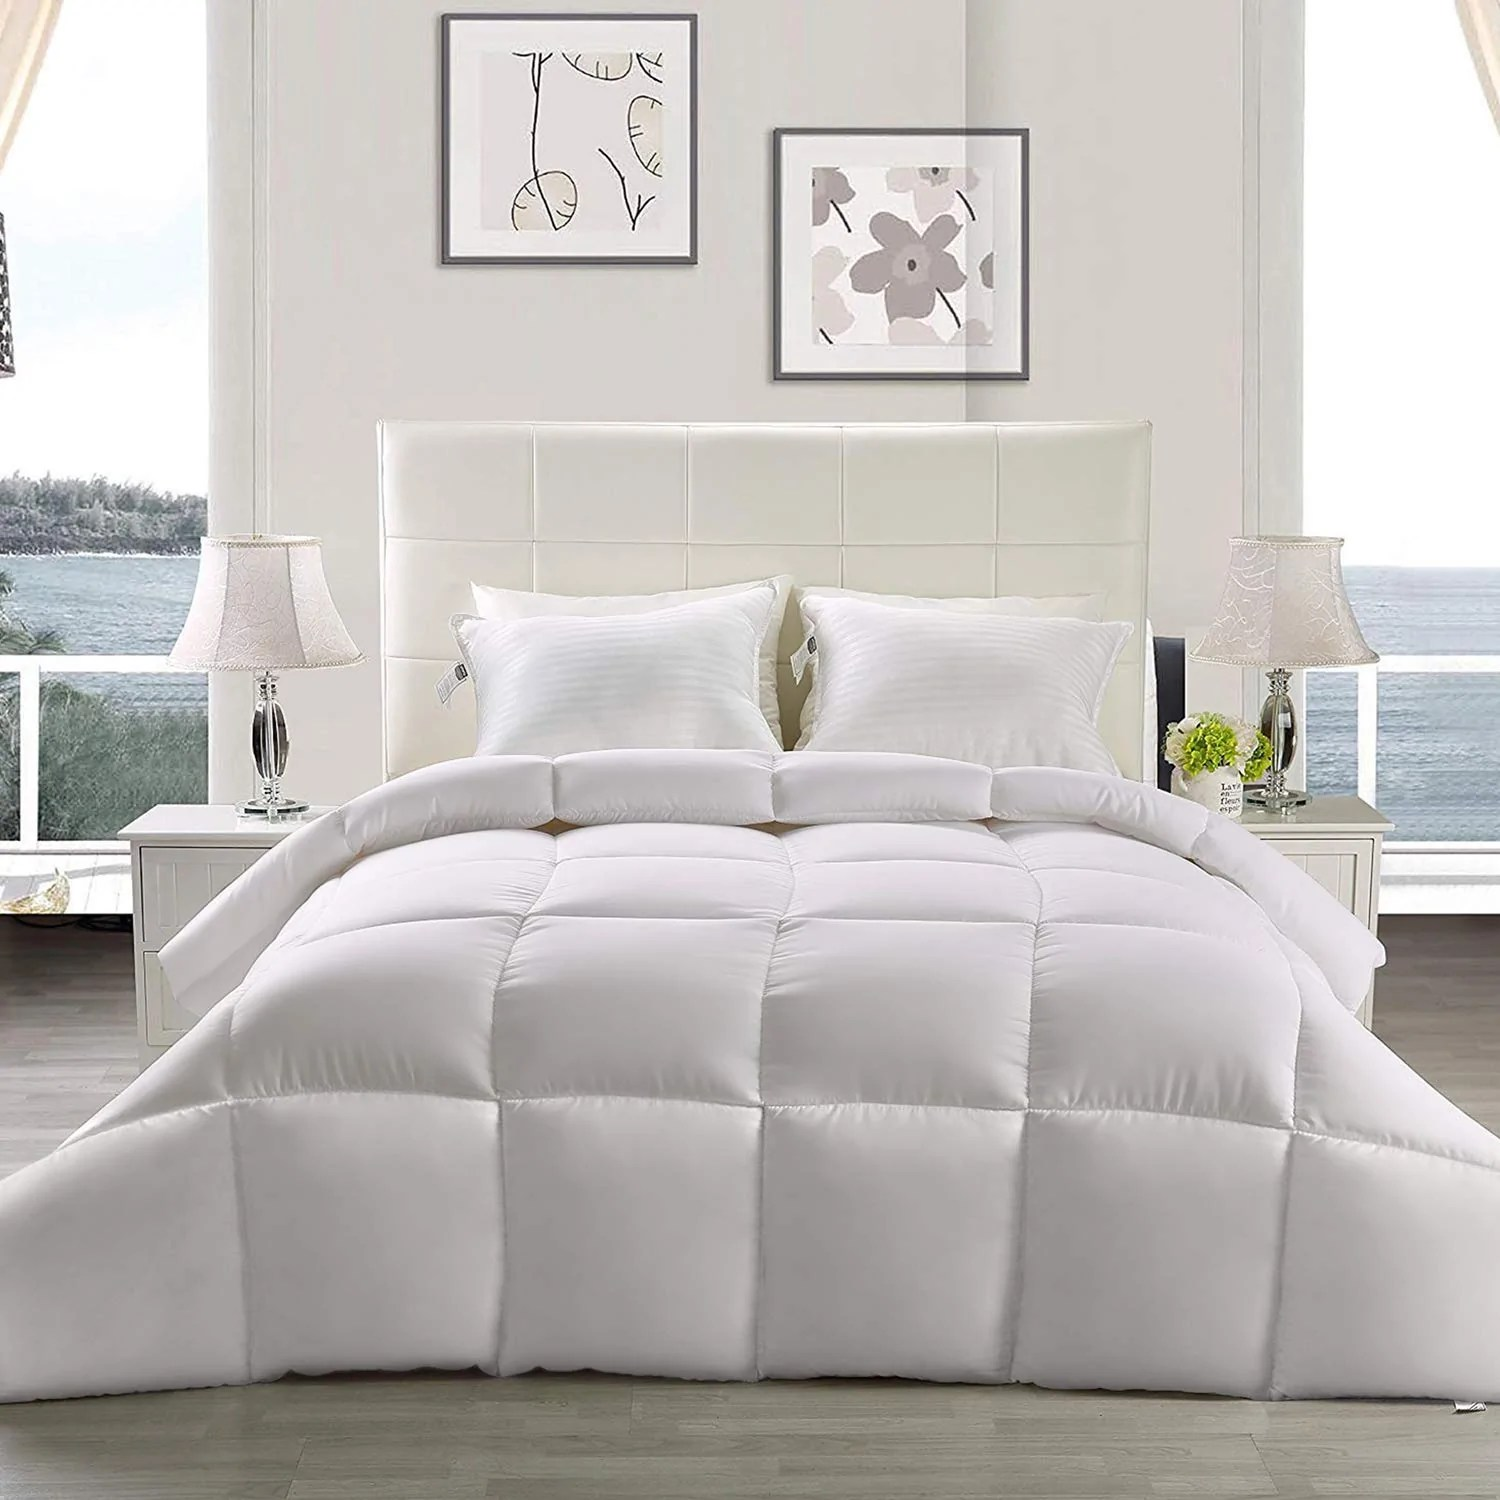 Buy Utopia Bedding Lightweight Comforter 250 Gsm From 14 17 Piece Utopia Deals